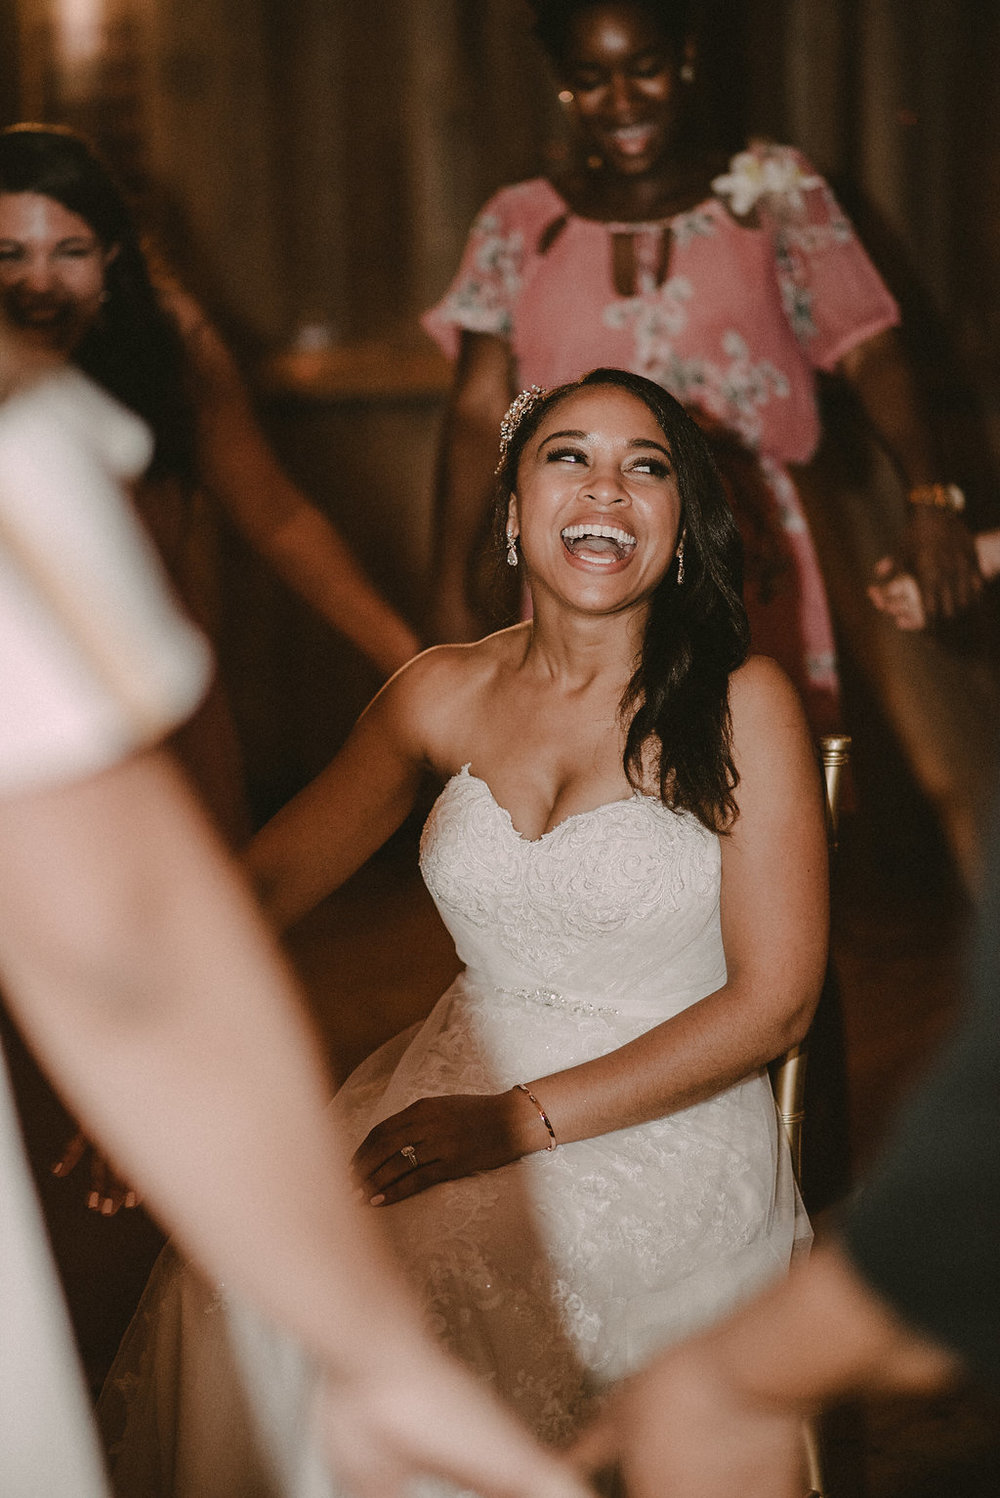 Bride laughing at wedding reception